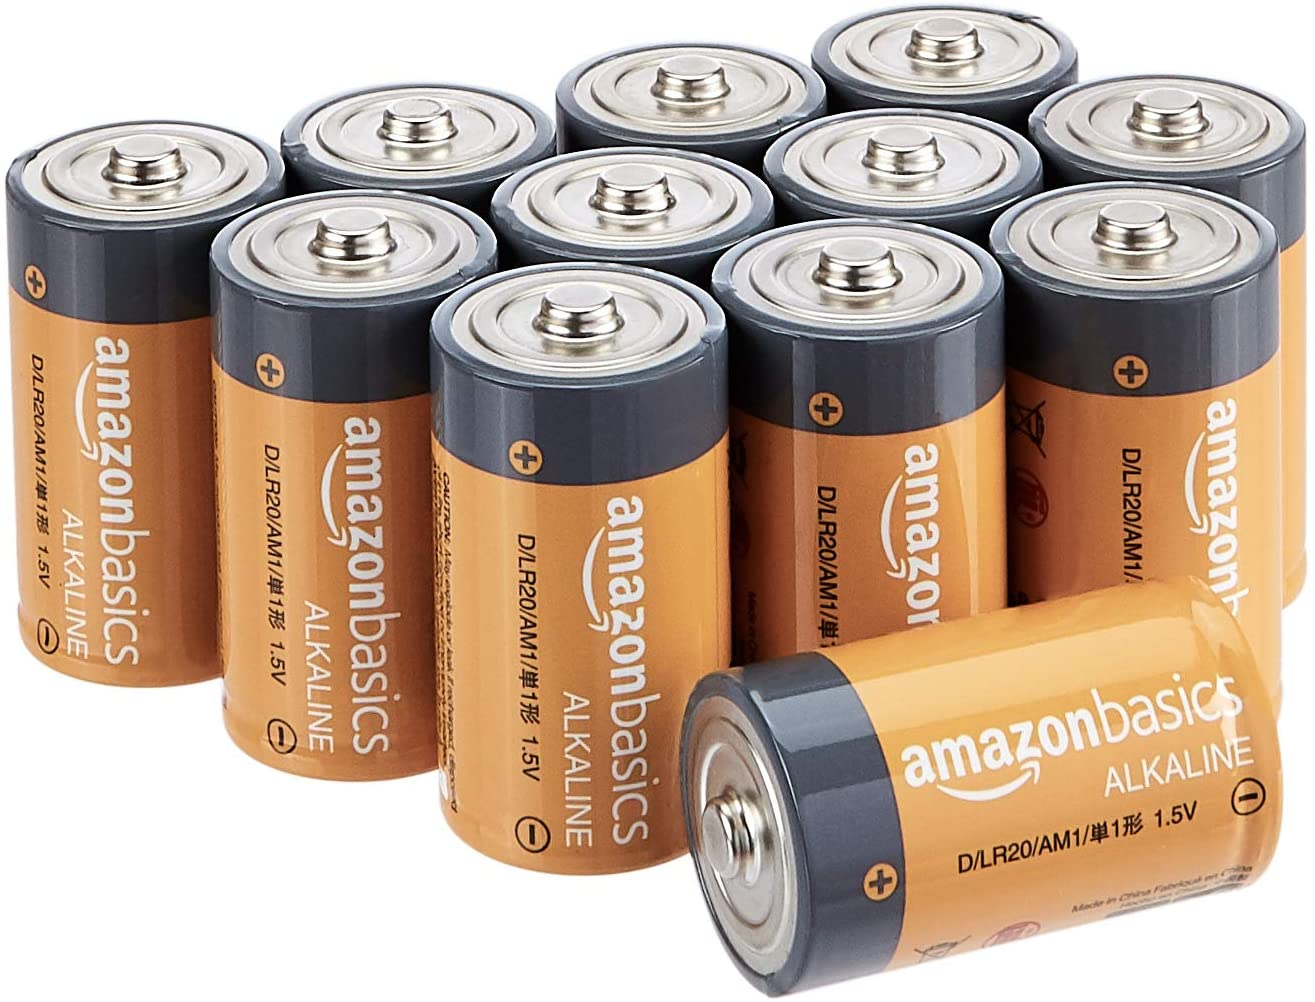 Basics D Cell 1.5 Volt Everyday Alkaline Batteries - Pack of 12 (Packaging may vary): Health & Personal Care